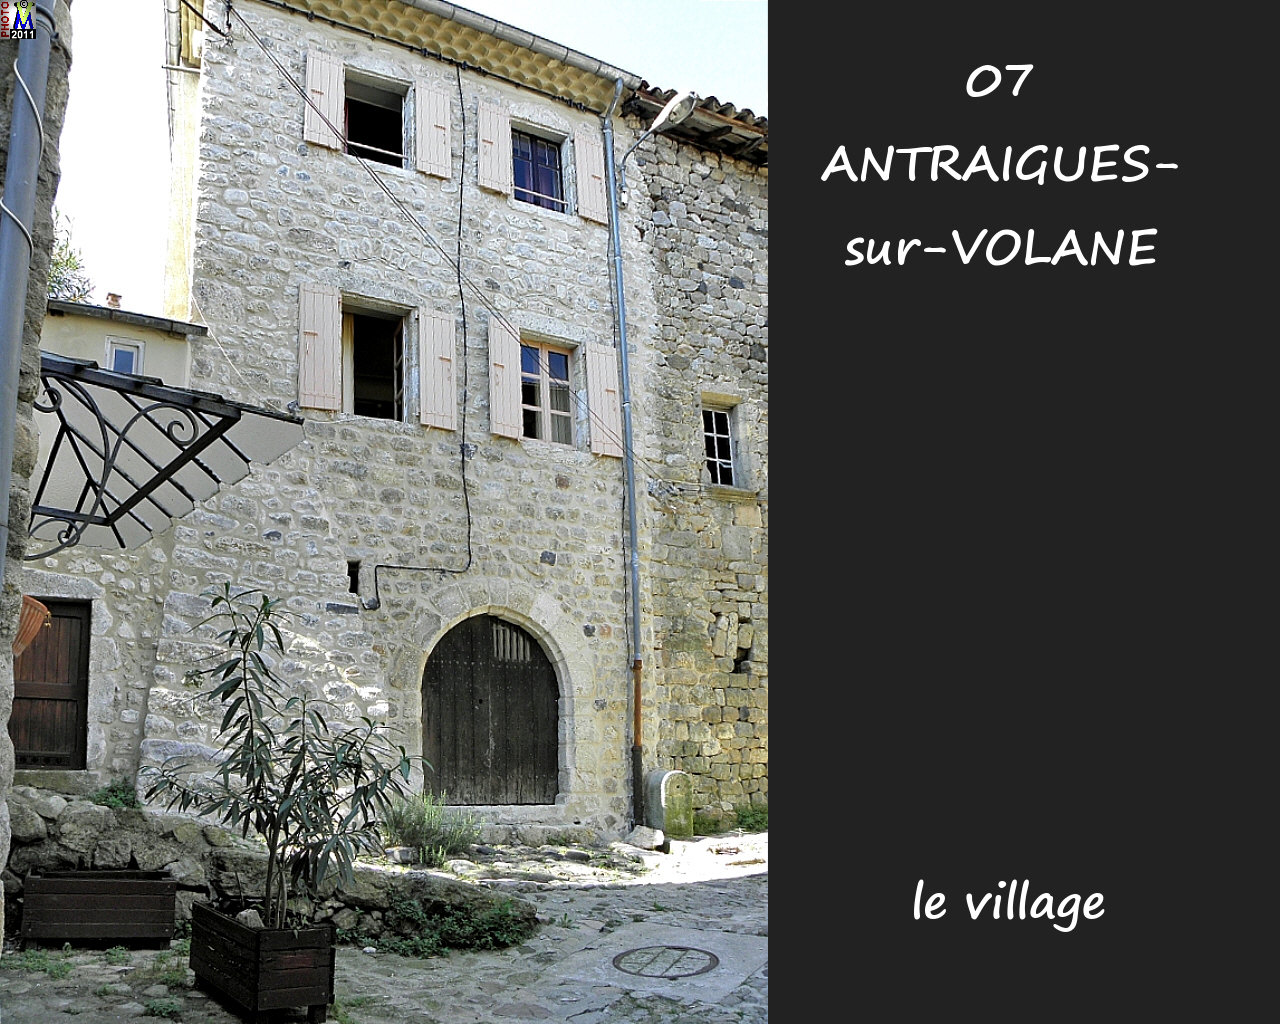 07ANTRAIGUES-VOLANE_village_122.jpg